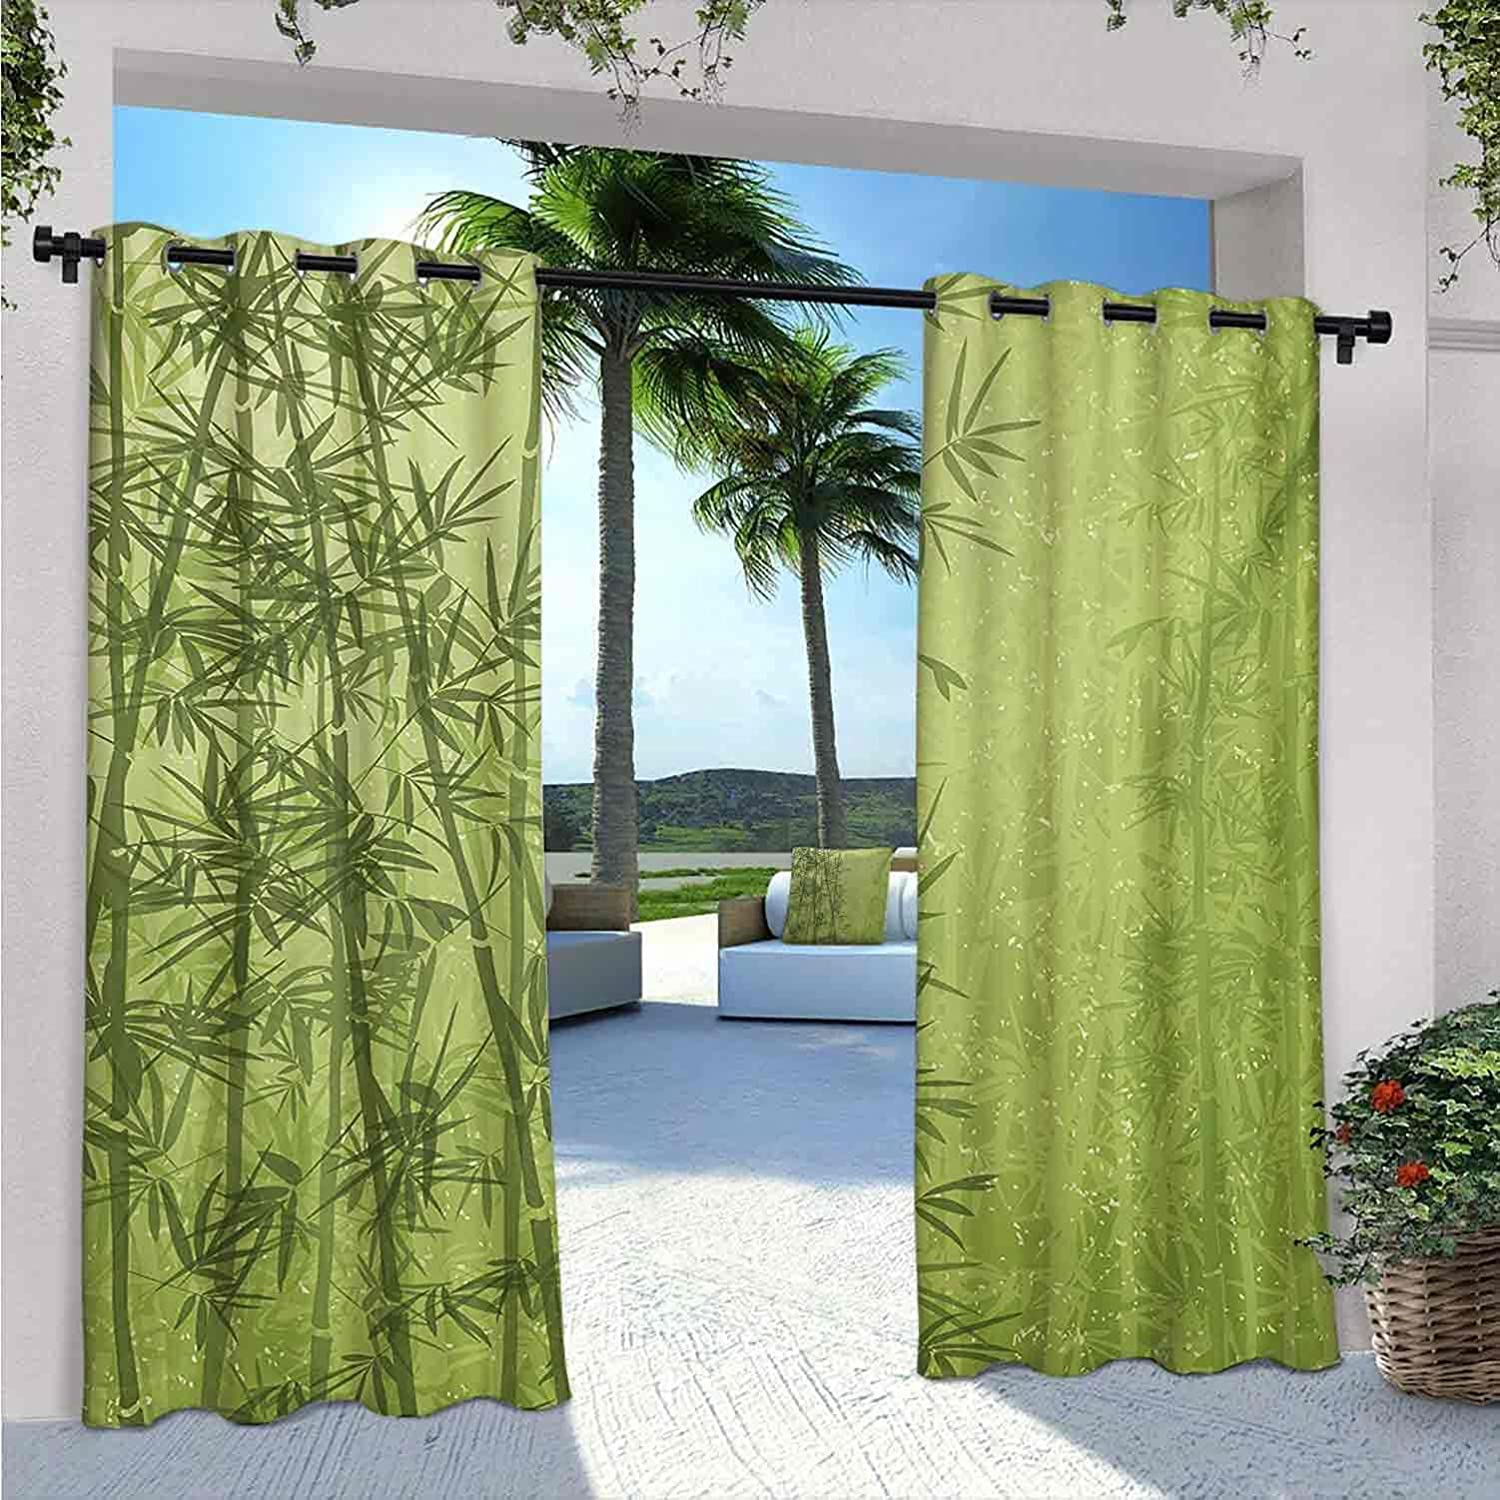 Exotic Waterproof Indoor Outdoor Curtains Seattle Mall for Patio Fo Tropical Choice